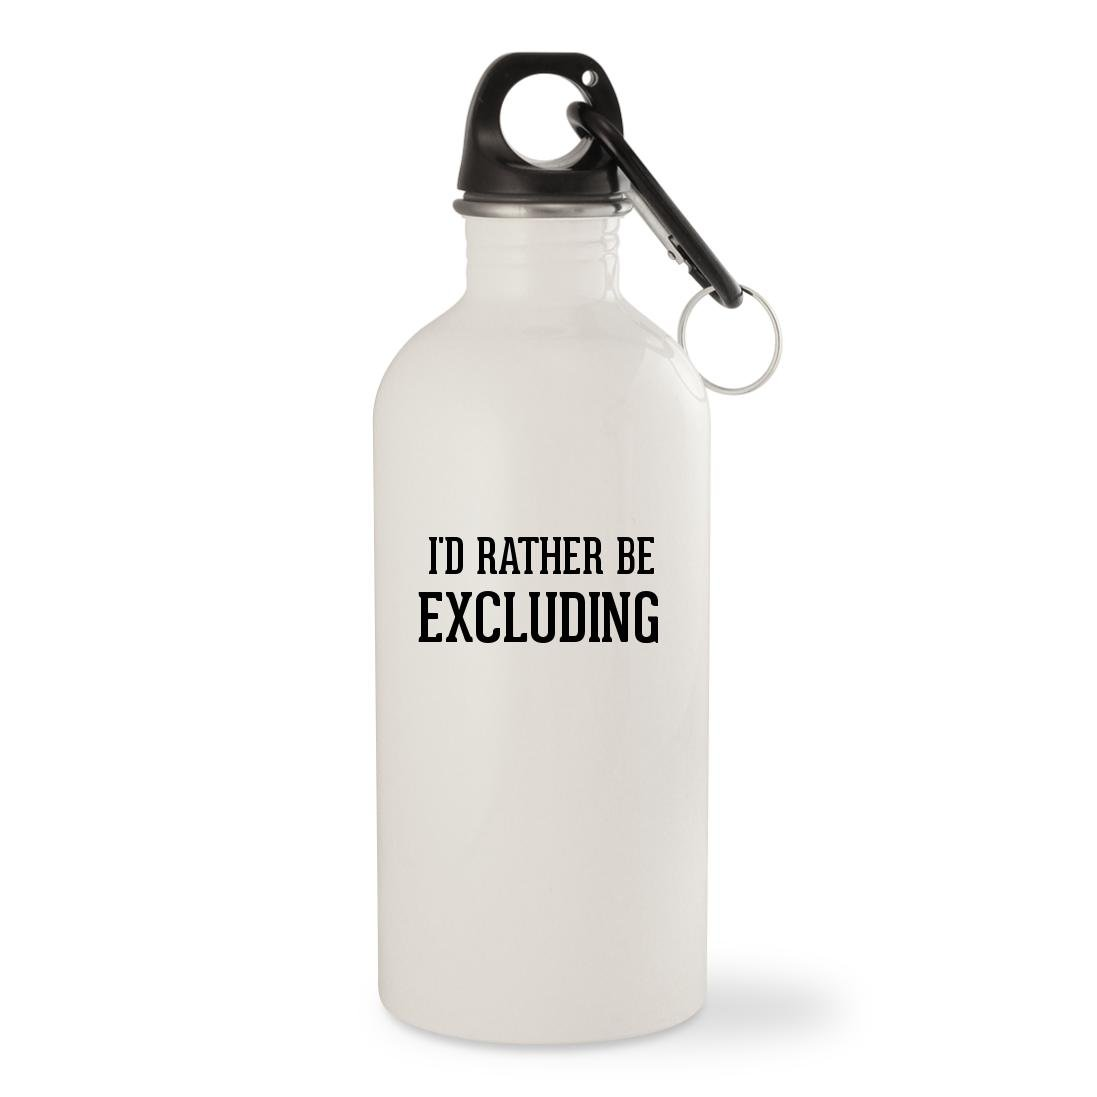 I'd Rather Be EXCLUDING - White 20oz Stainless Steel Water Bottle with Carabiner